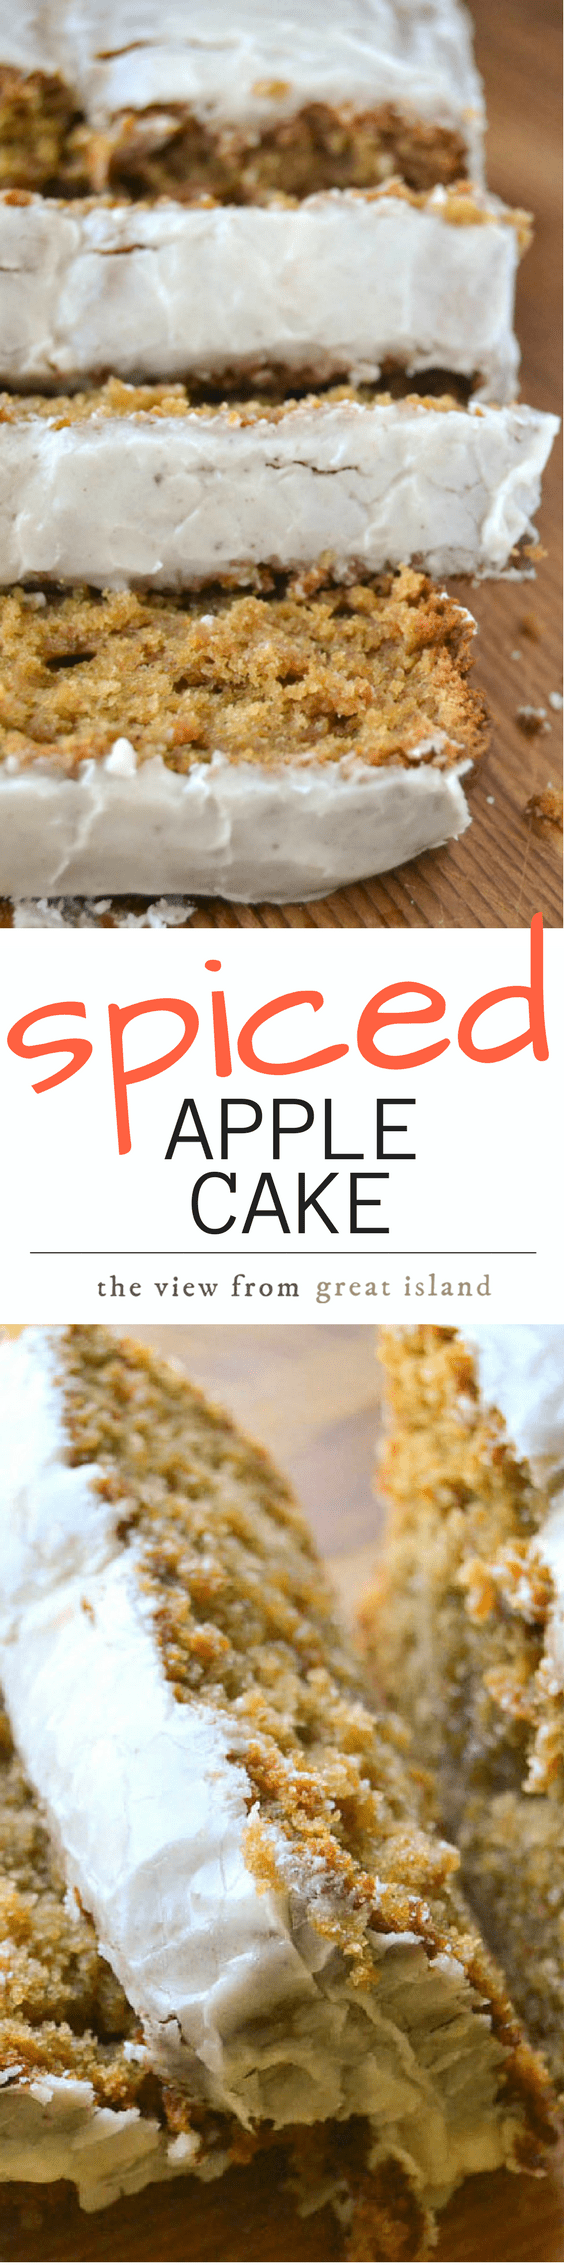 This Spiced Apple Cake has a moist crumb thanks to apple butter, and the perfect amount of spice ~ a nutmeg glaze tops it off! | coffee cake | pound cake #cake #spicecake #applecake #appledessert #falldessert #breakfast #quickbread #poundcake #loafcake #apples #fall